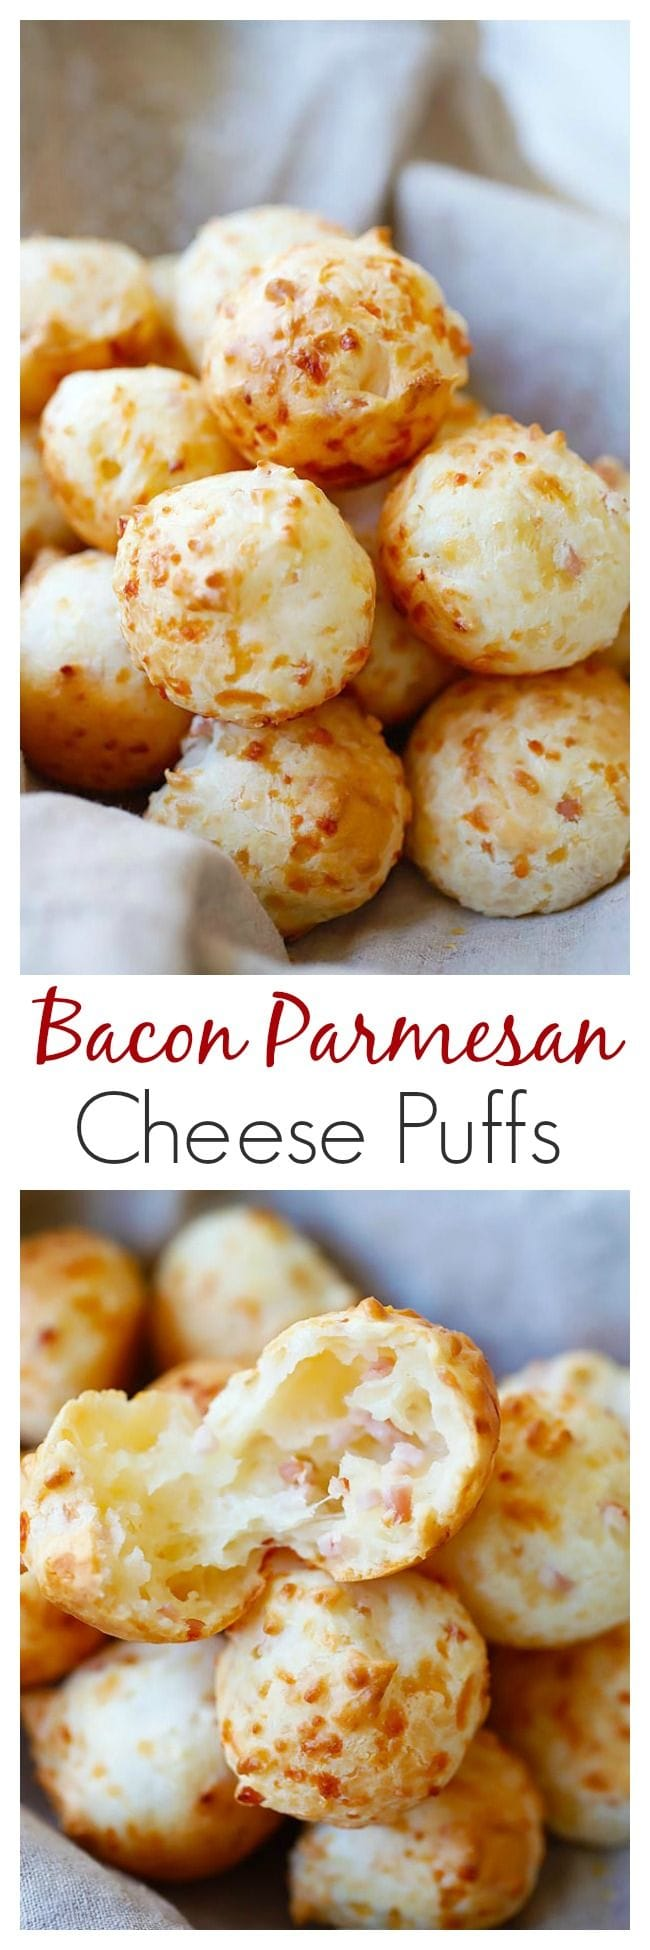 Bacon Parmesan Gougeres (Cheese Puffs) | Easy Delicious Recipes